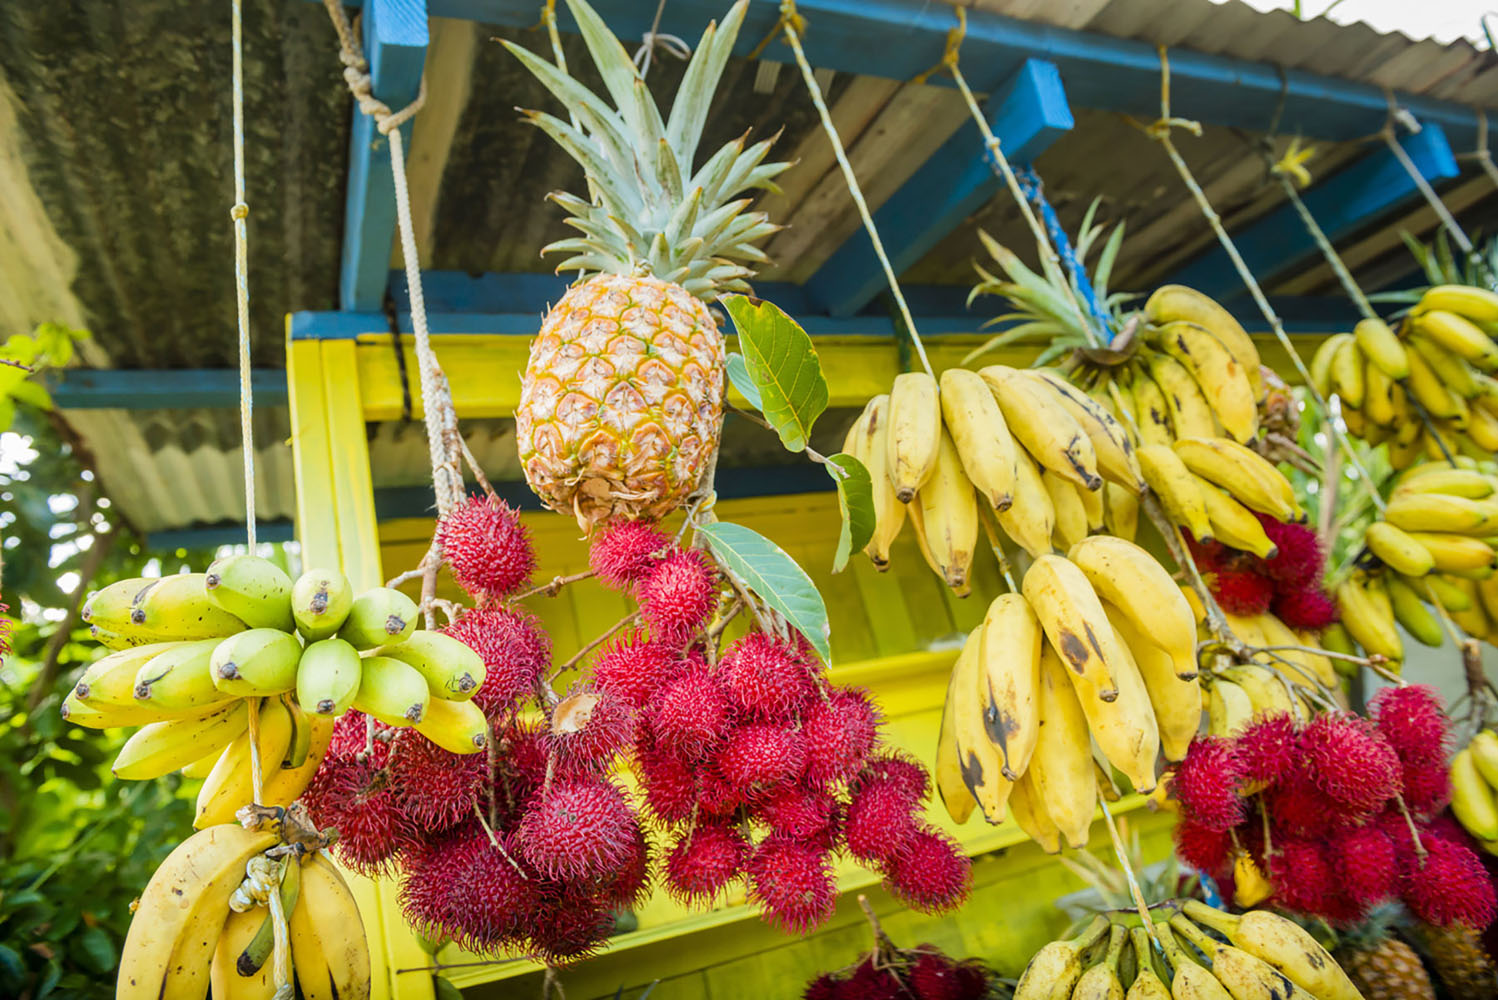 Fruits such as bananas and pineapples for sale in Hilo Farmers Market